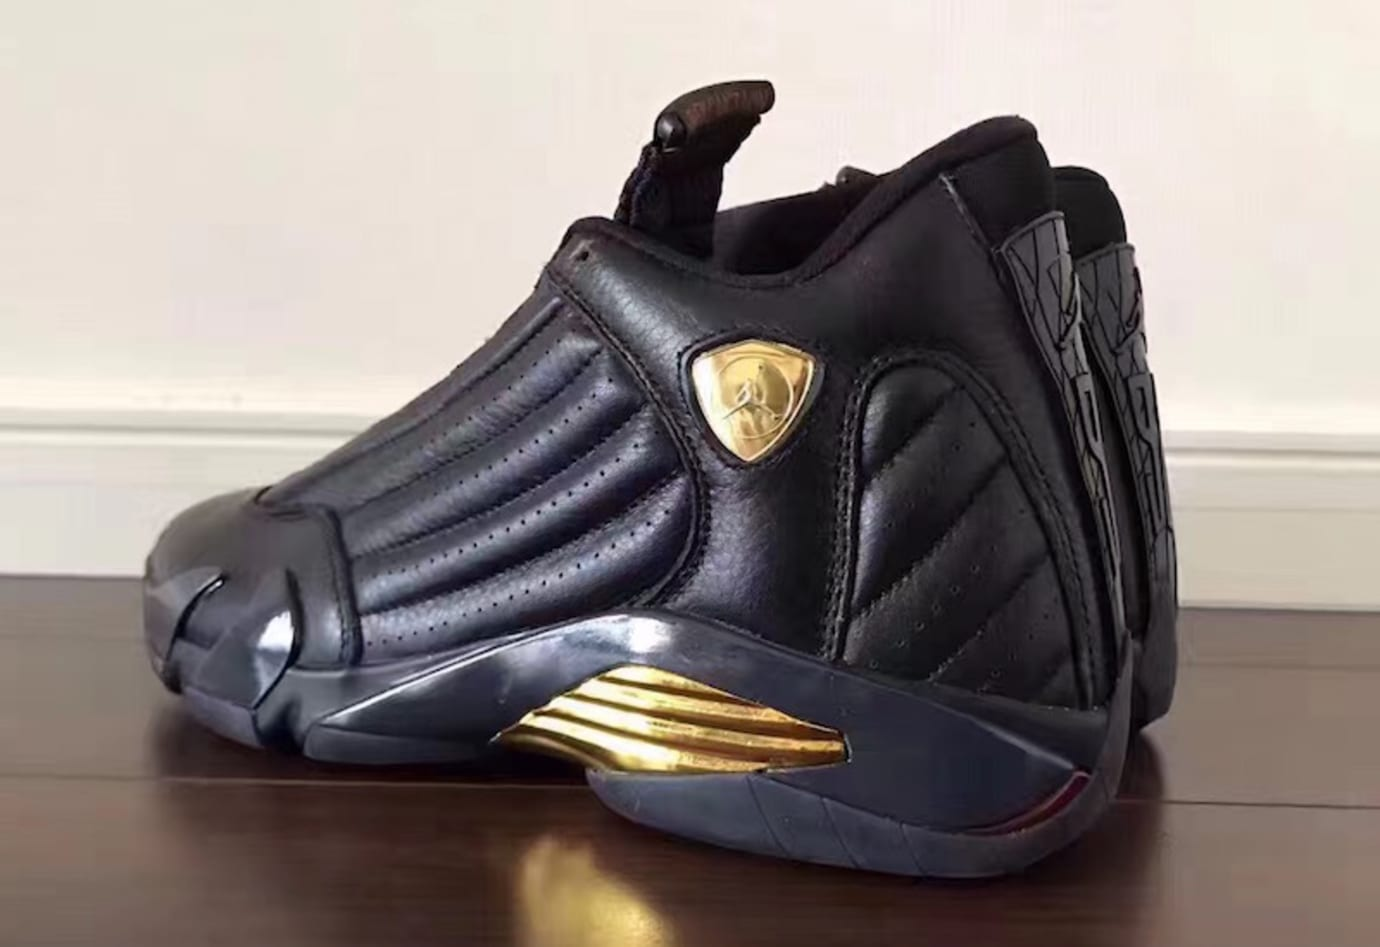 1614a5f71cb Air Jordan 14 Defining Moments Black Gold Release Date 487471-022 (1)